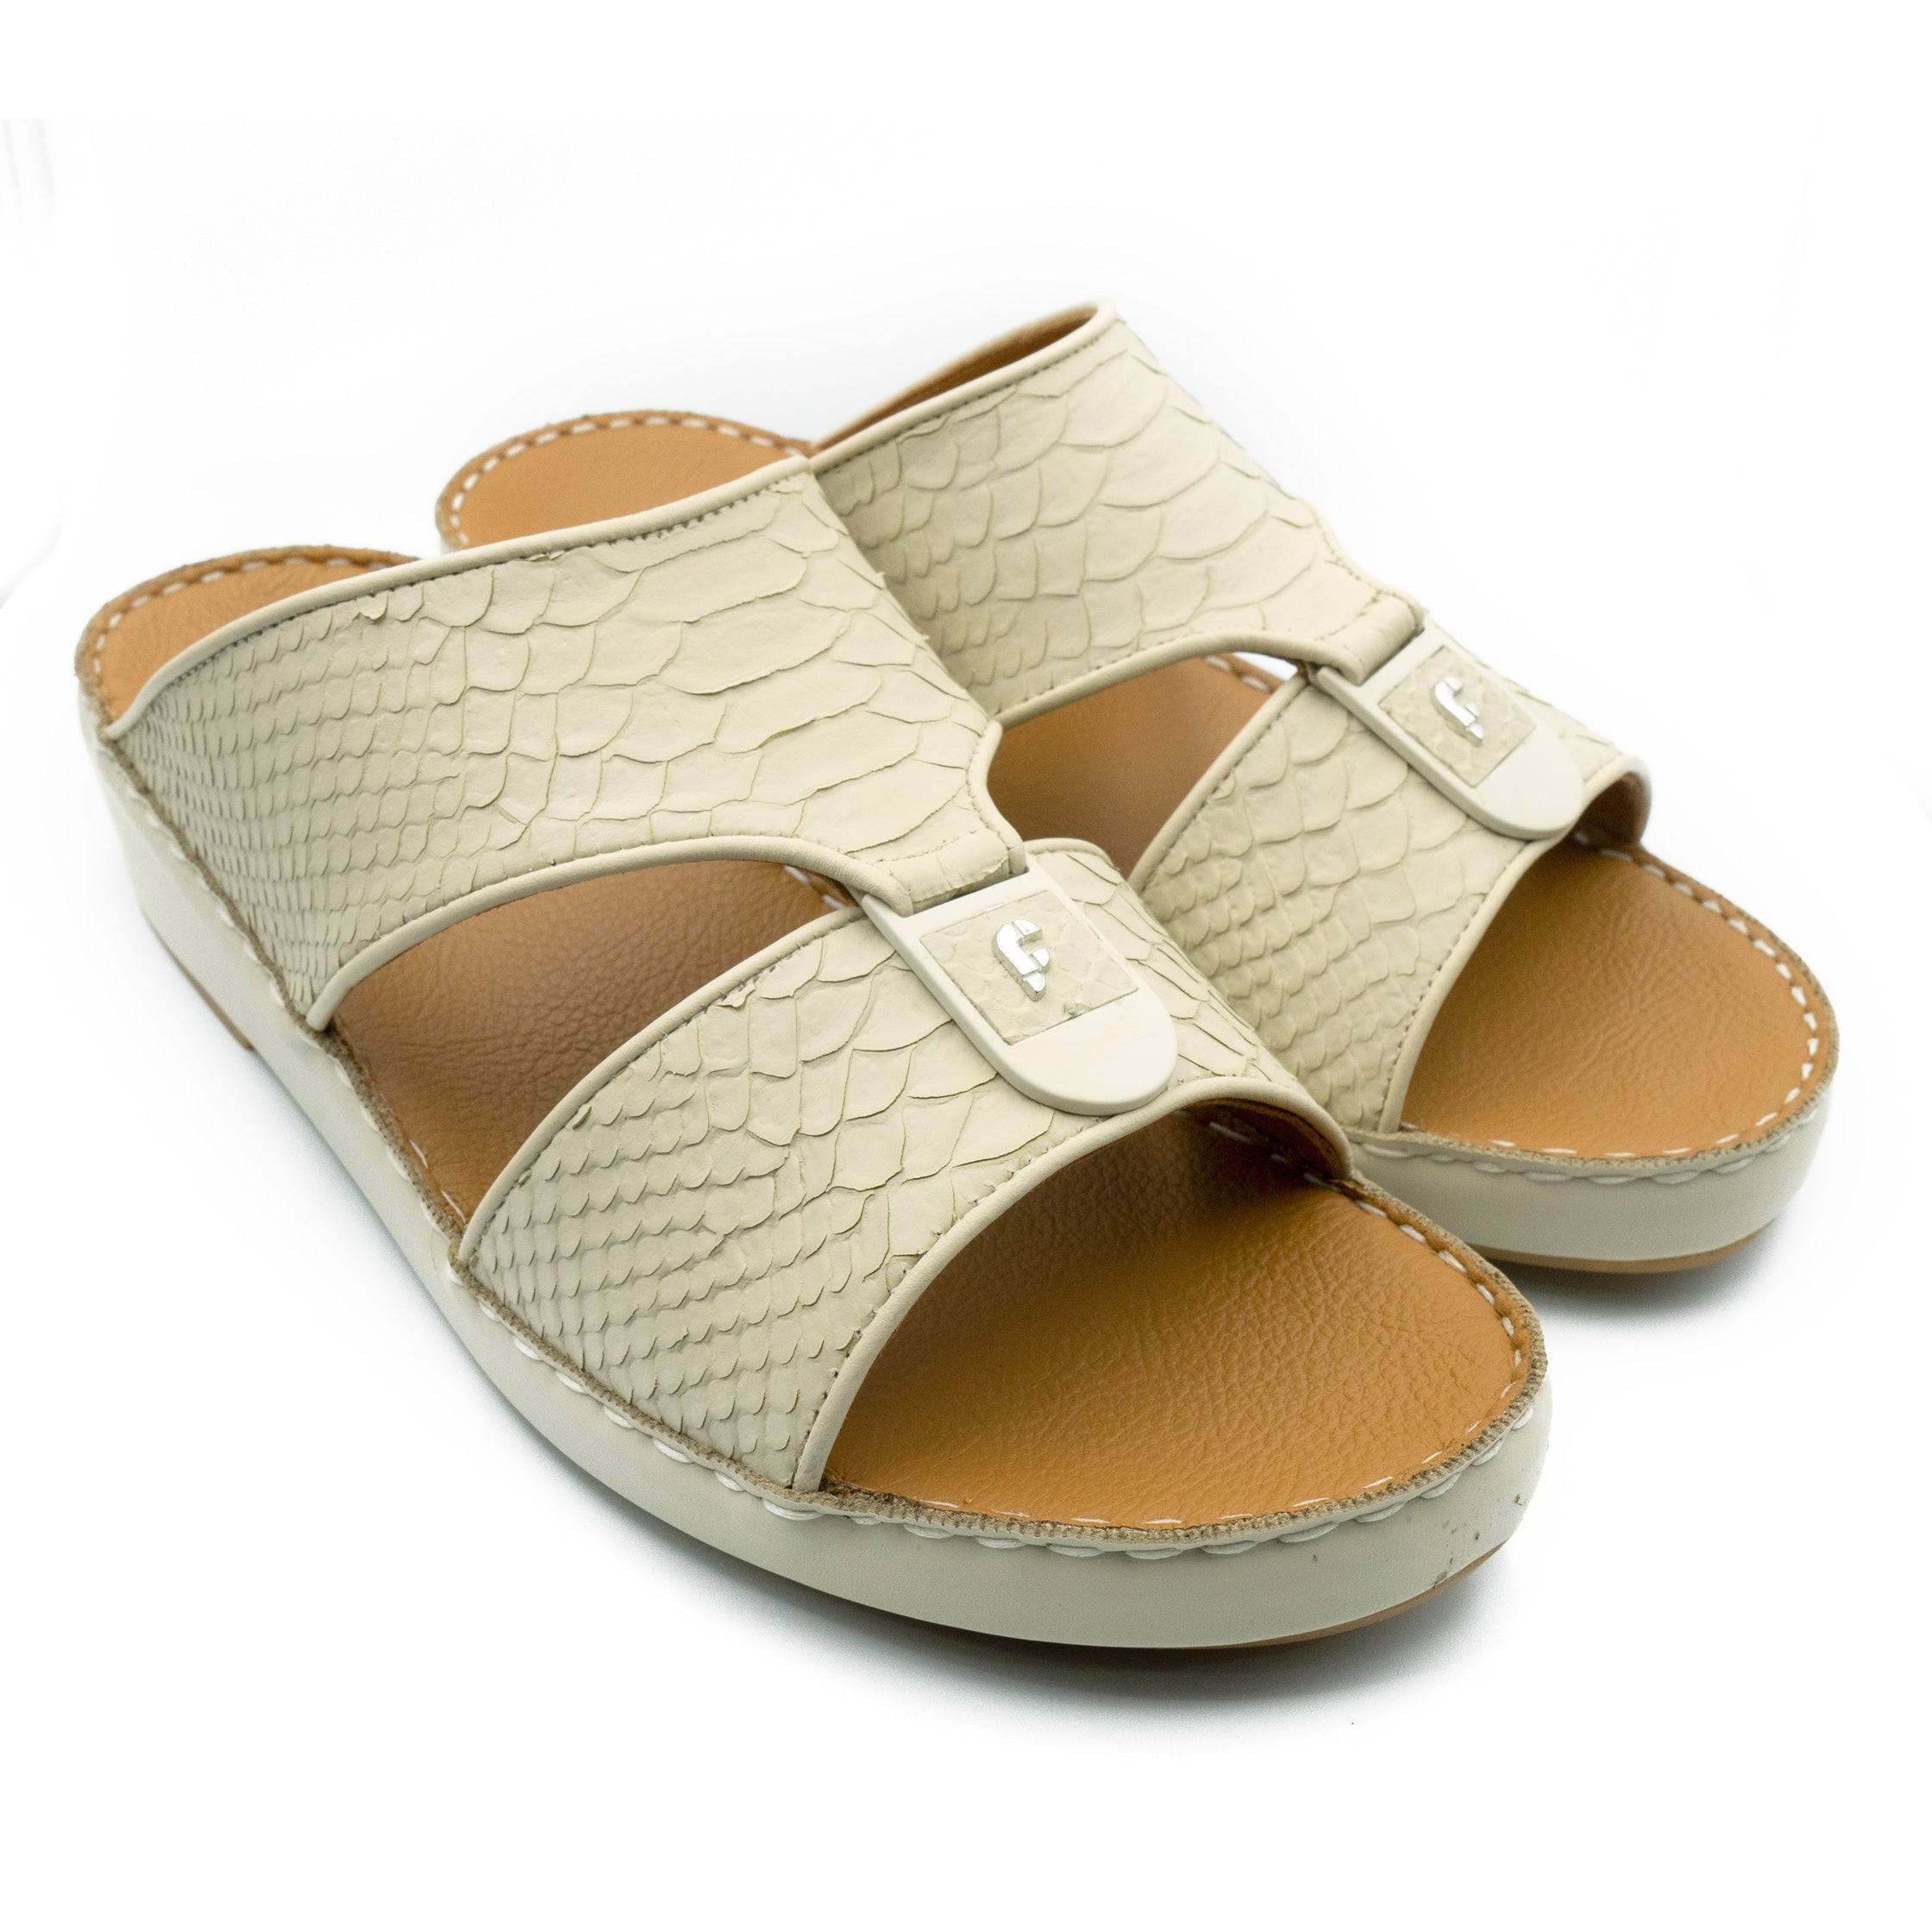 Beige F Pitone (317-88) Arabic Sandals by F